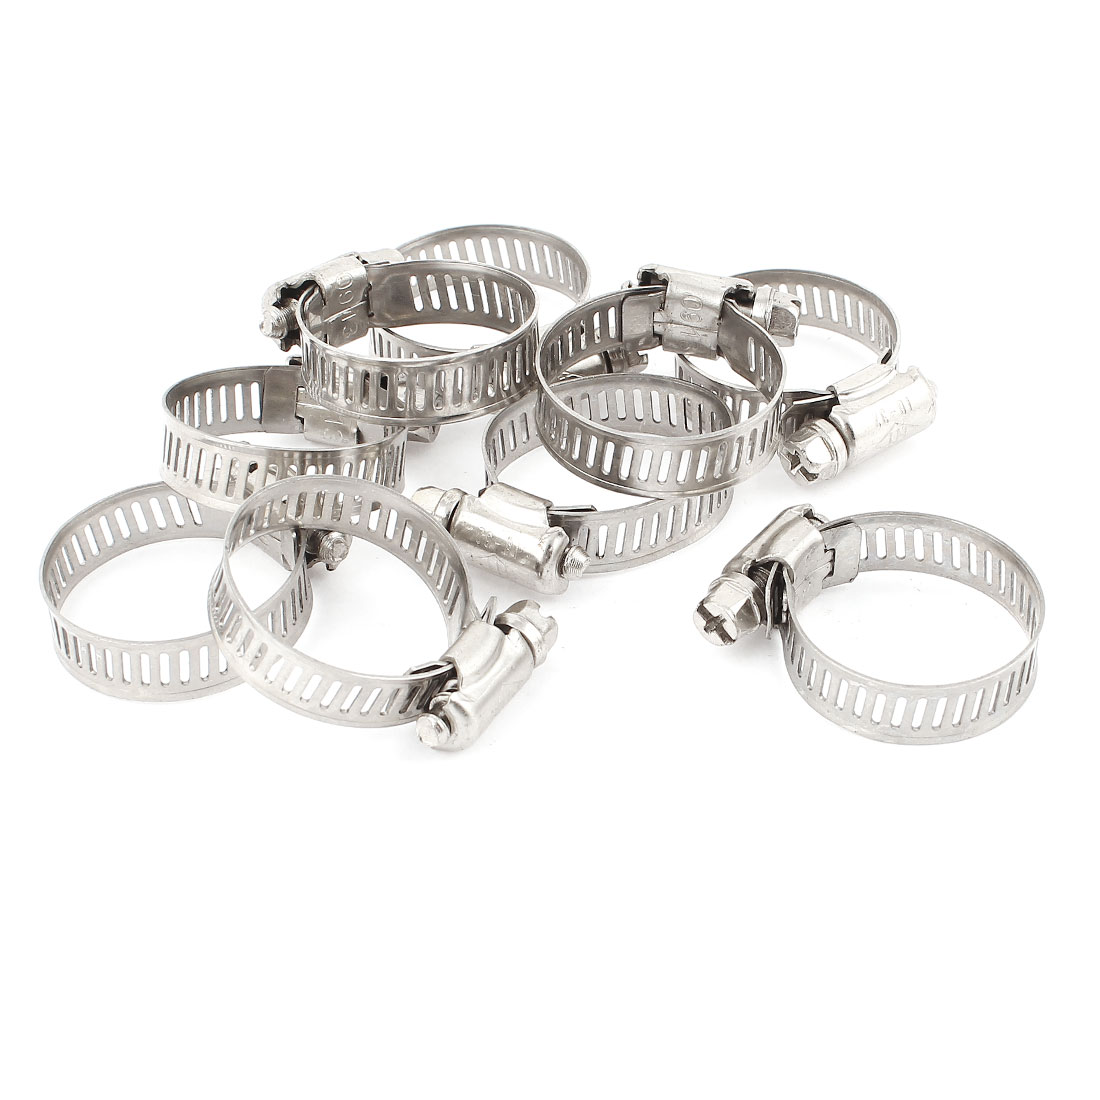 Uxcell Hose Clamp Cable Pipe Fitting Metal Adjustable Worm